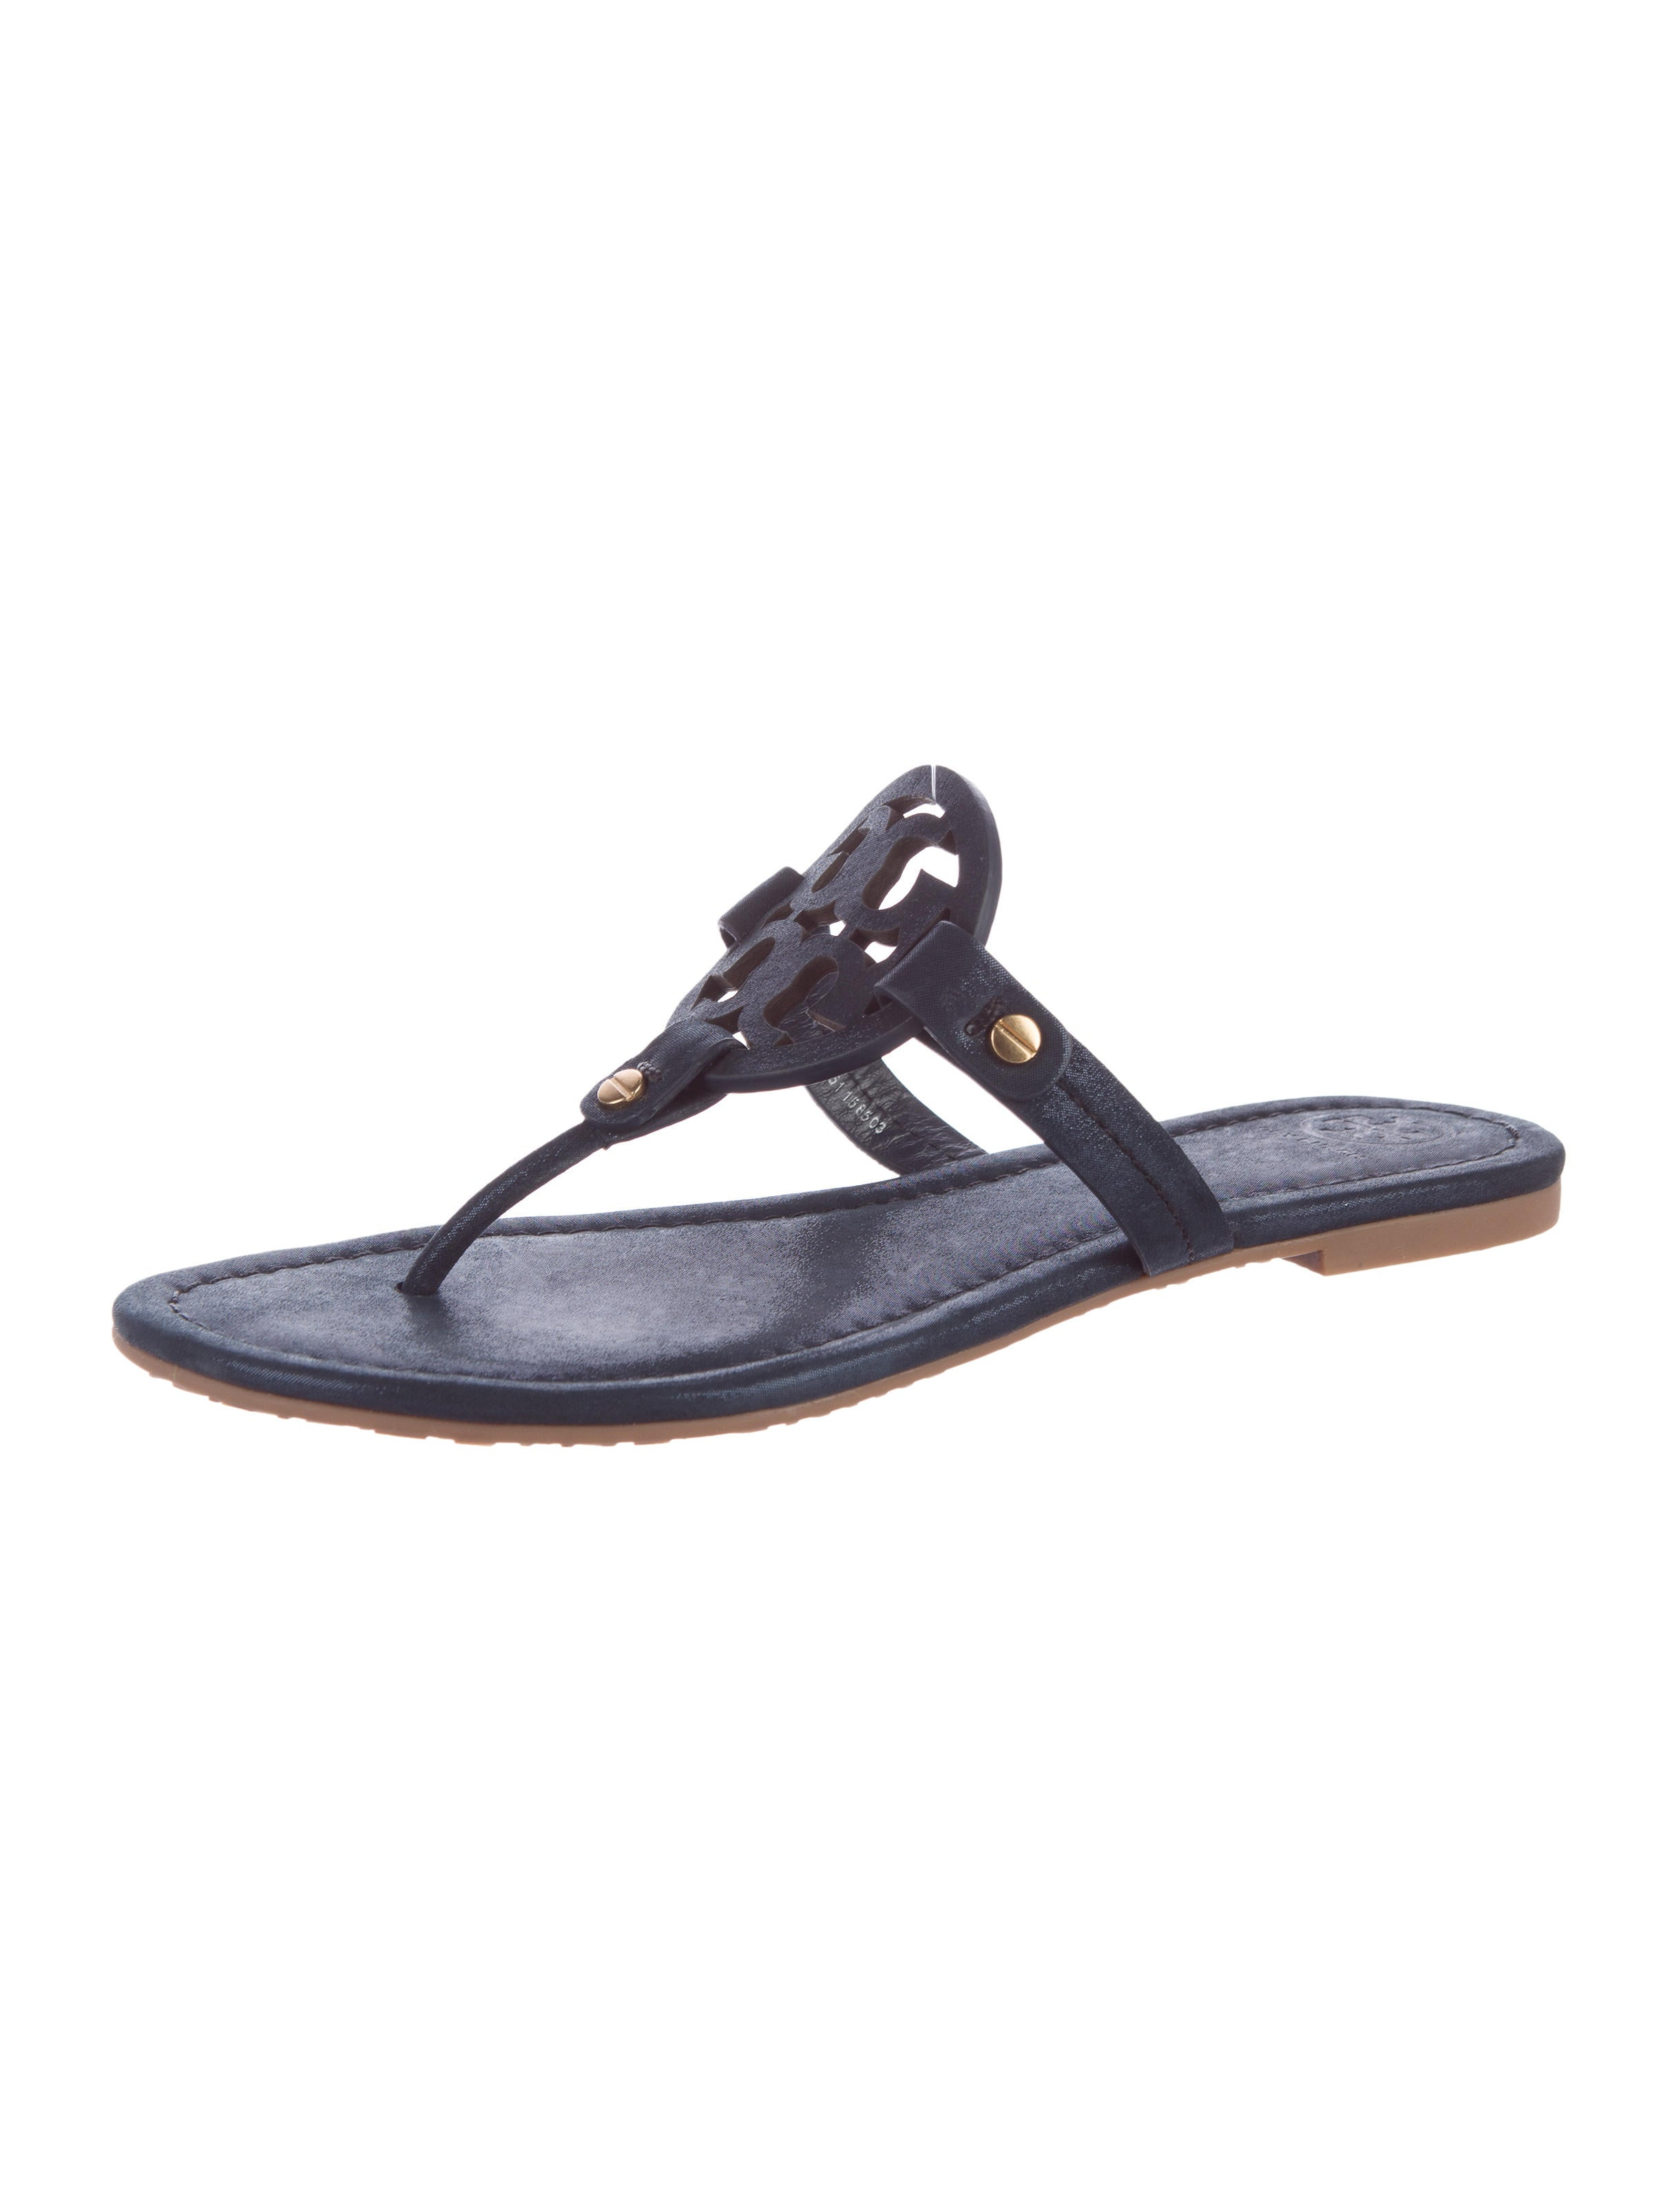 burch leather miller sandals shoes wto89248 the